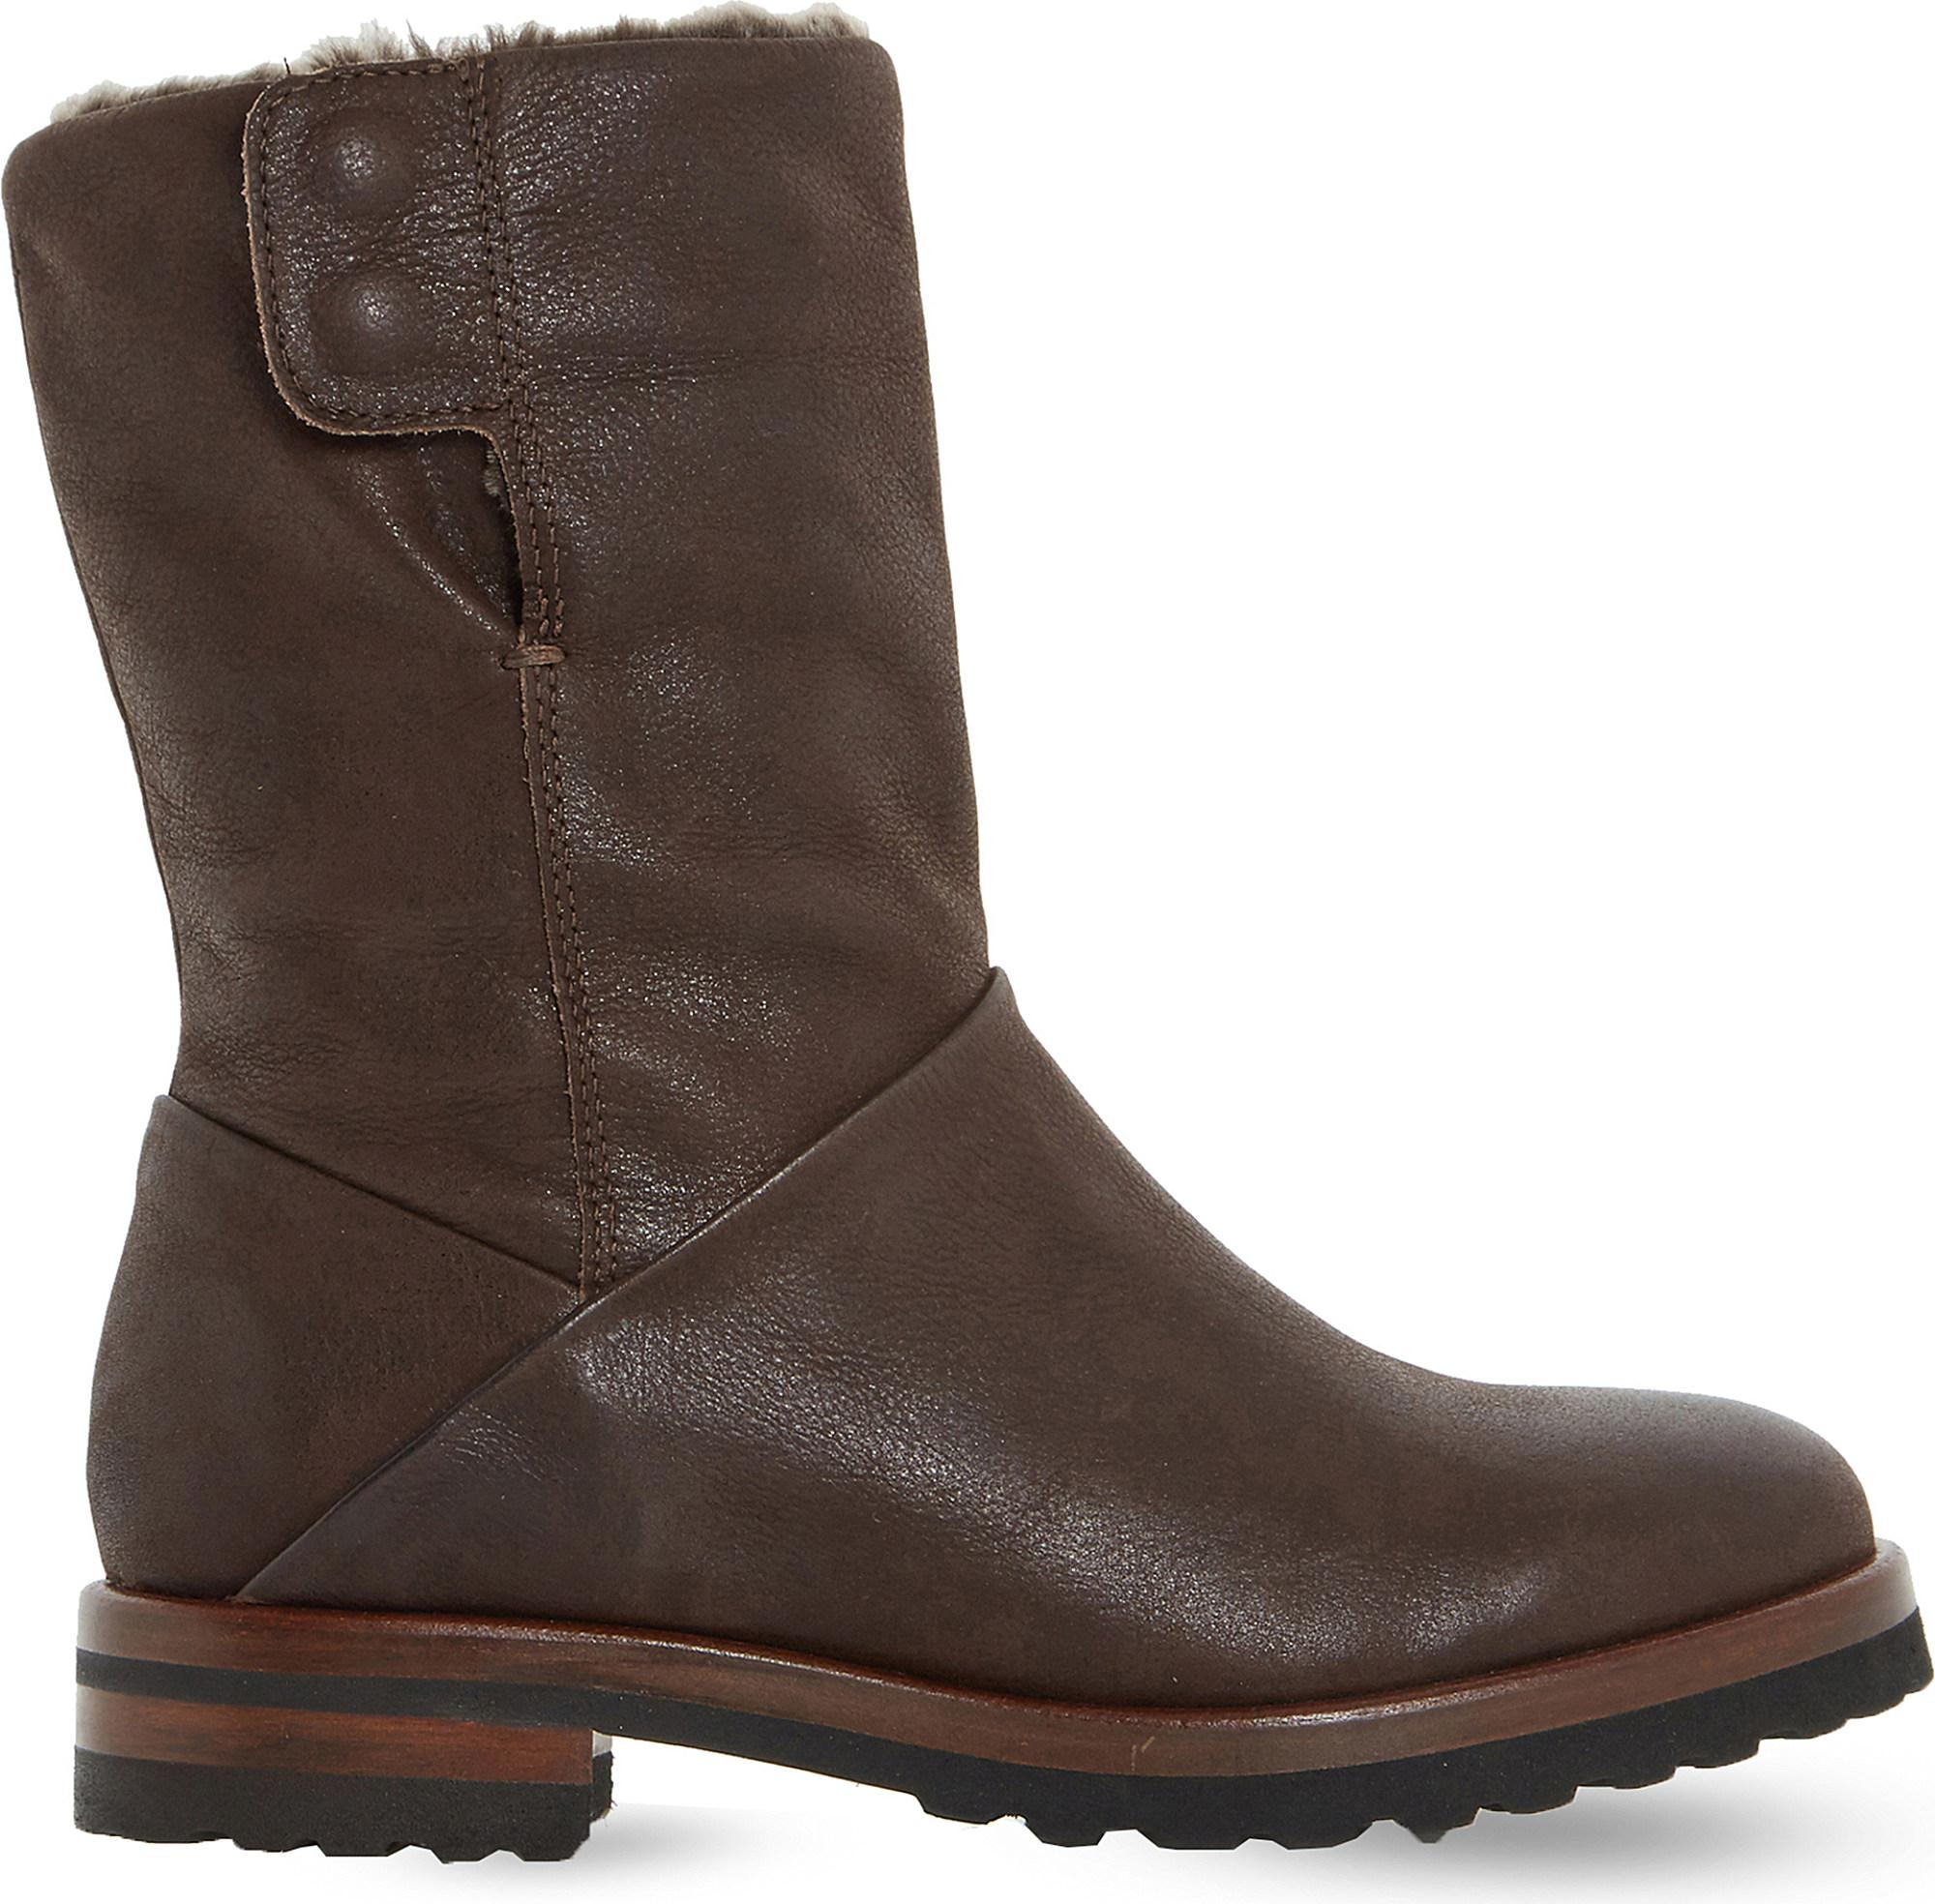 Brown leather DUNE Rayner shearling lined boots